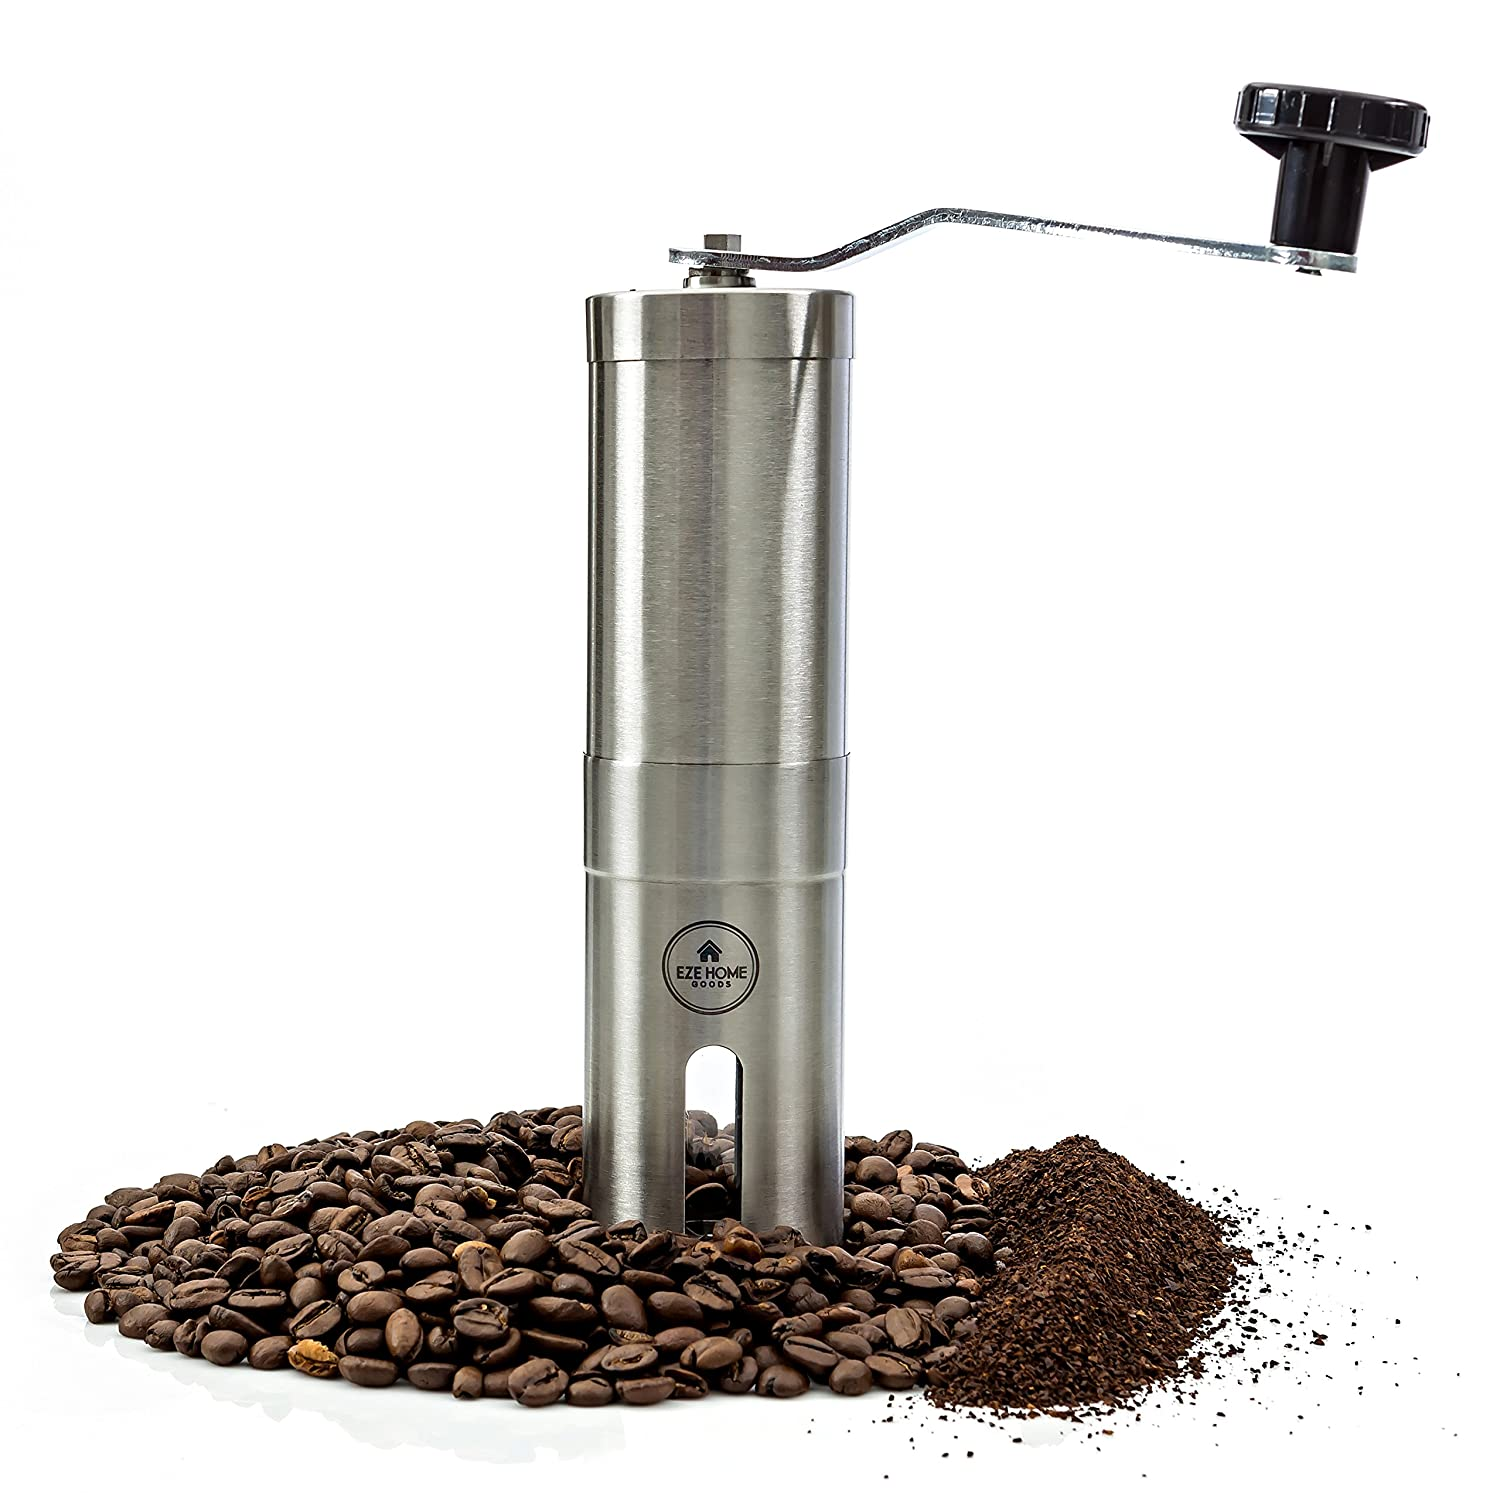 Most Consistent Hand Coffee Grinder & Coffee Press - Ceramic Burr Manual Coffee Grinder fits in Aeropress